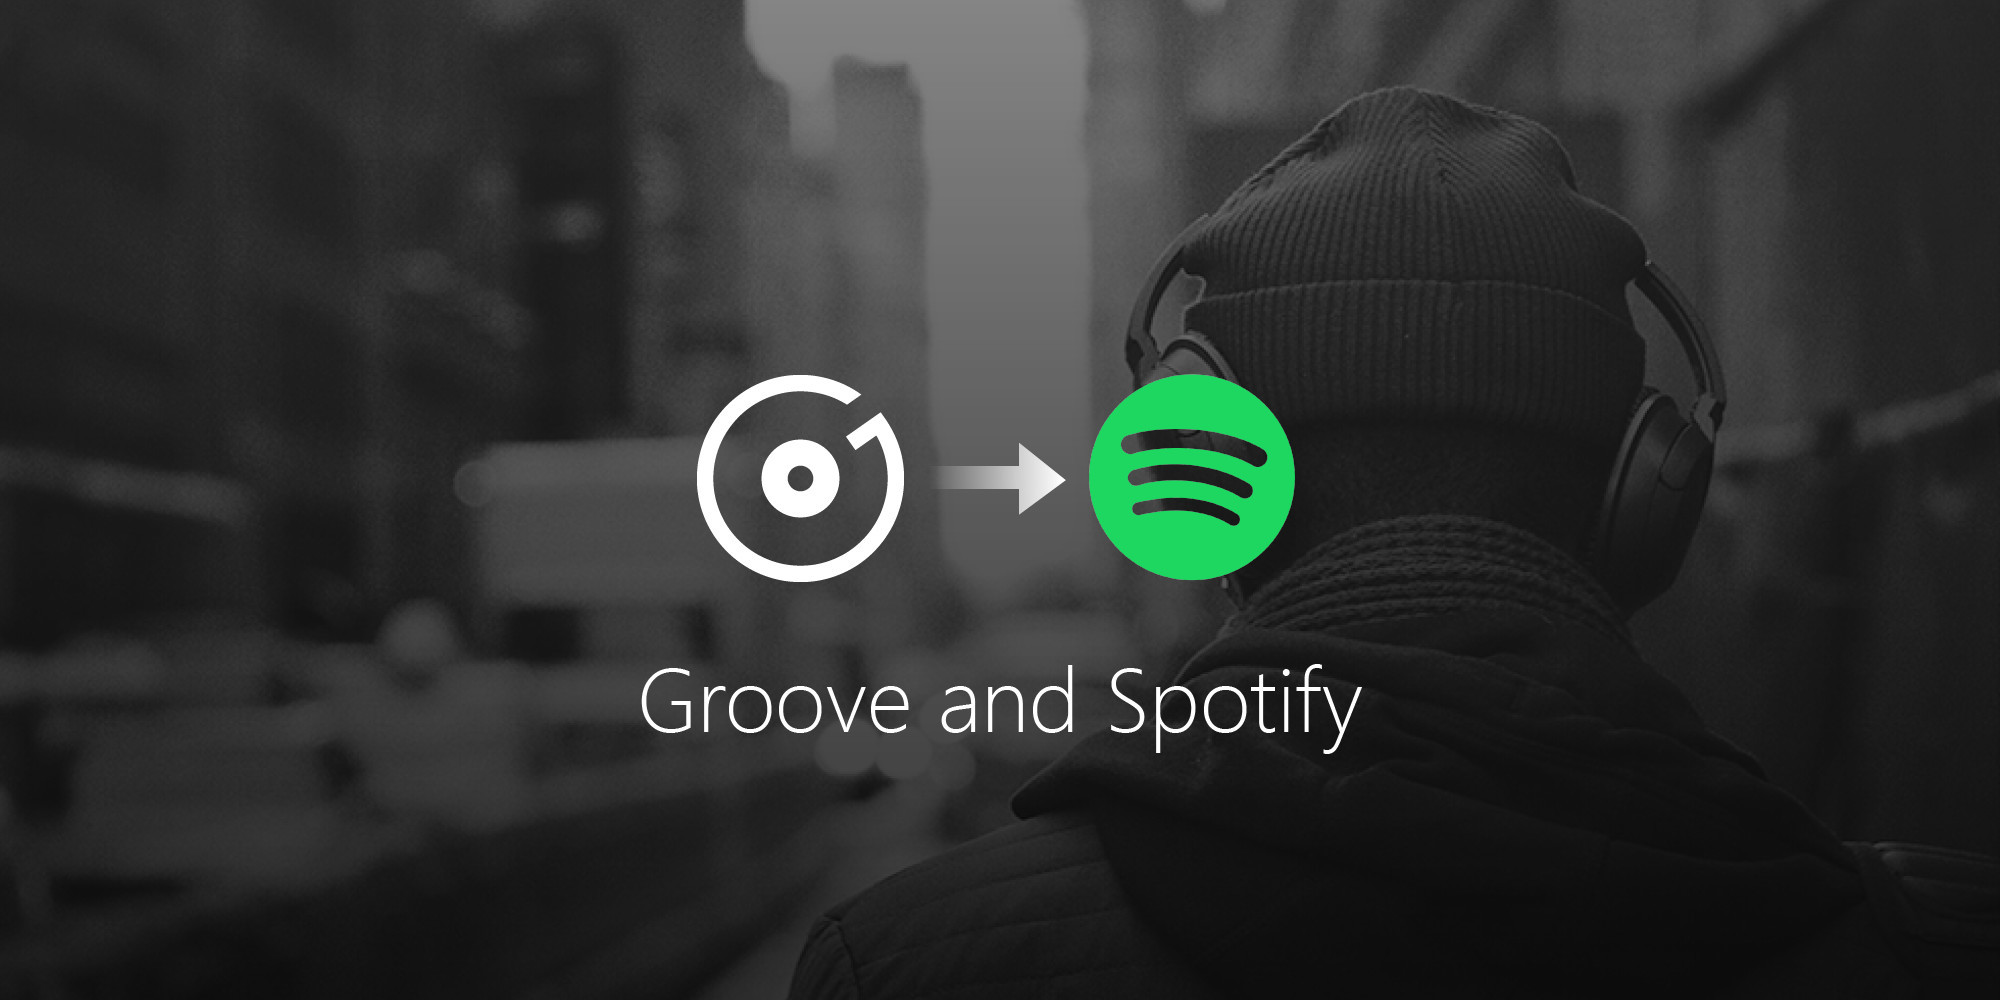 Microsoft Brings Spotify to Groove Music, Discontinues Music Purchases